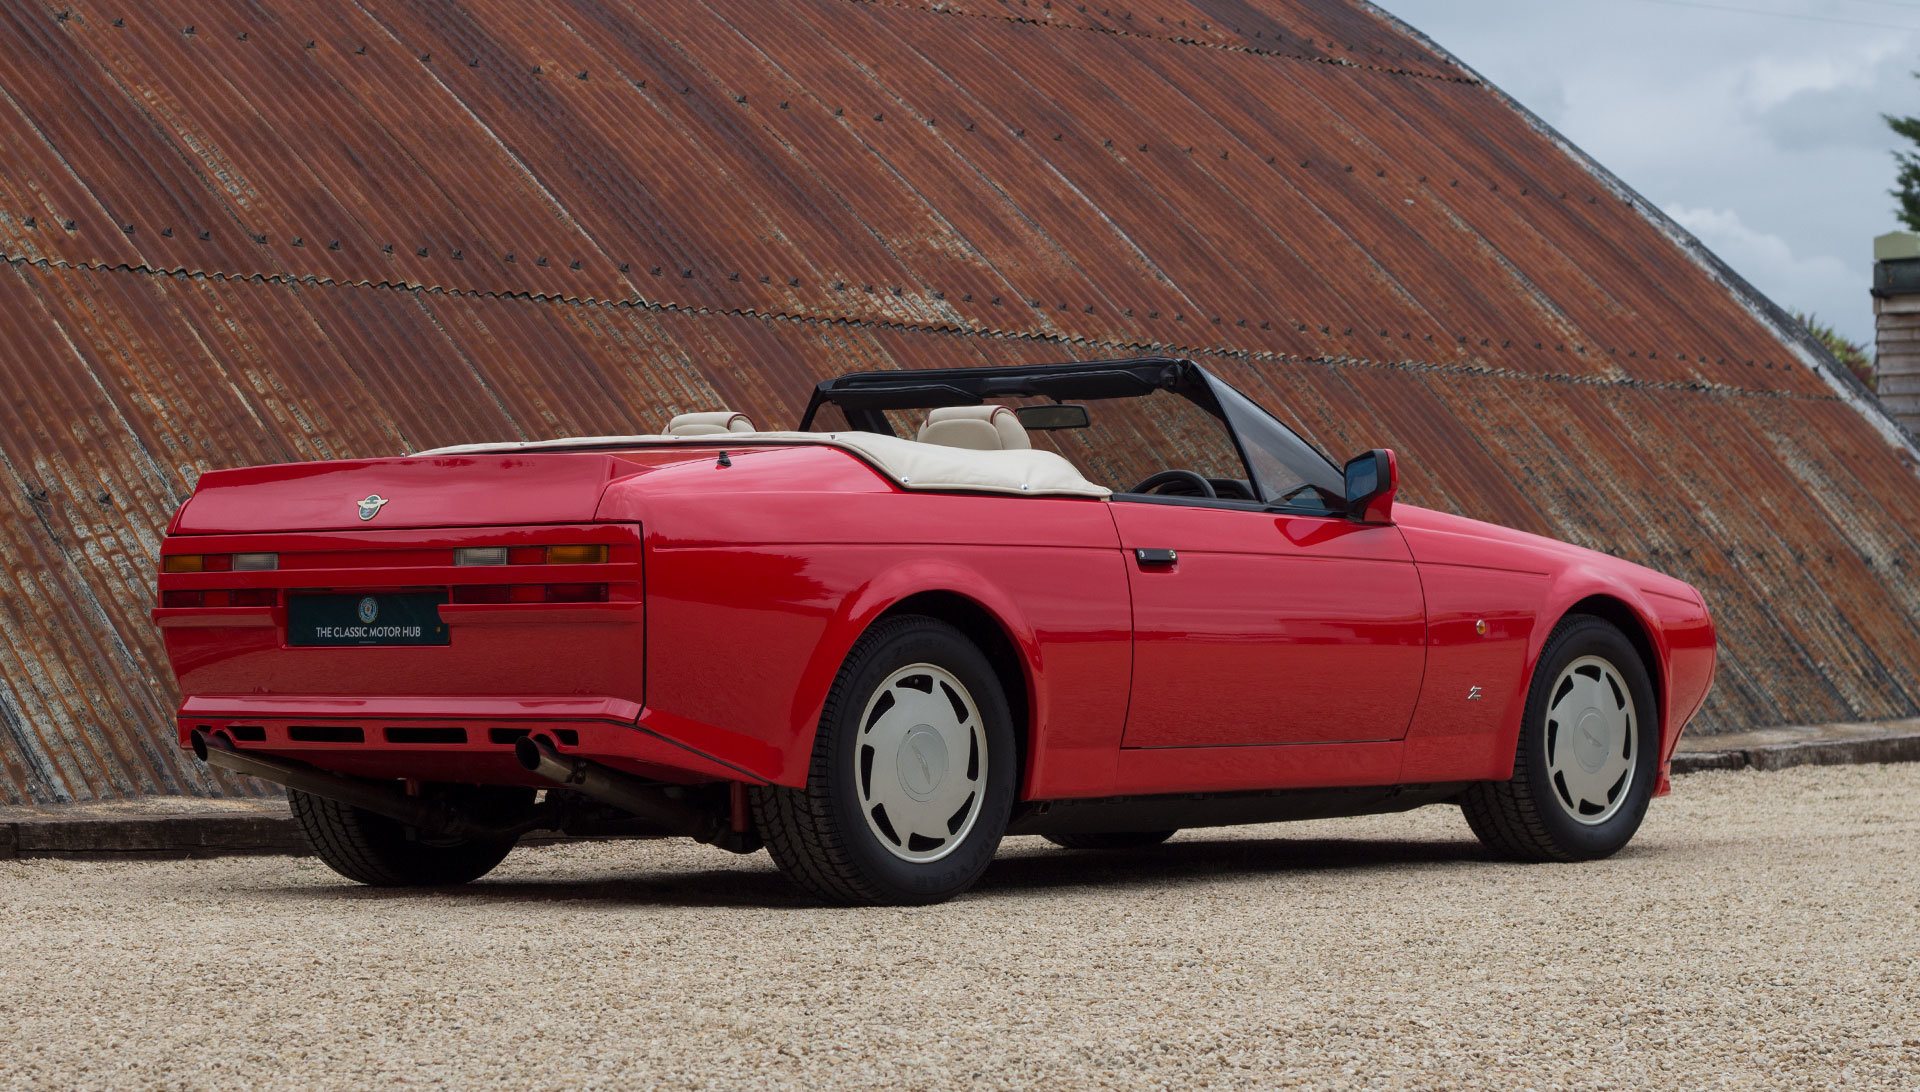 1989 Aston Martin V8 Vantage Volante Zagato 6.3 Litre For Sale (picture 8 of 24)